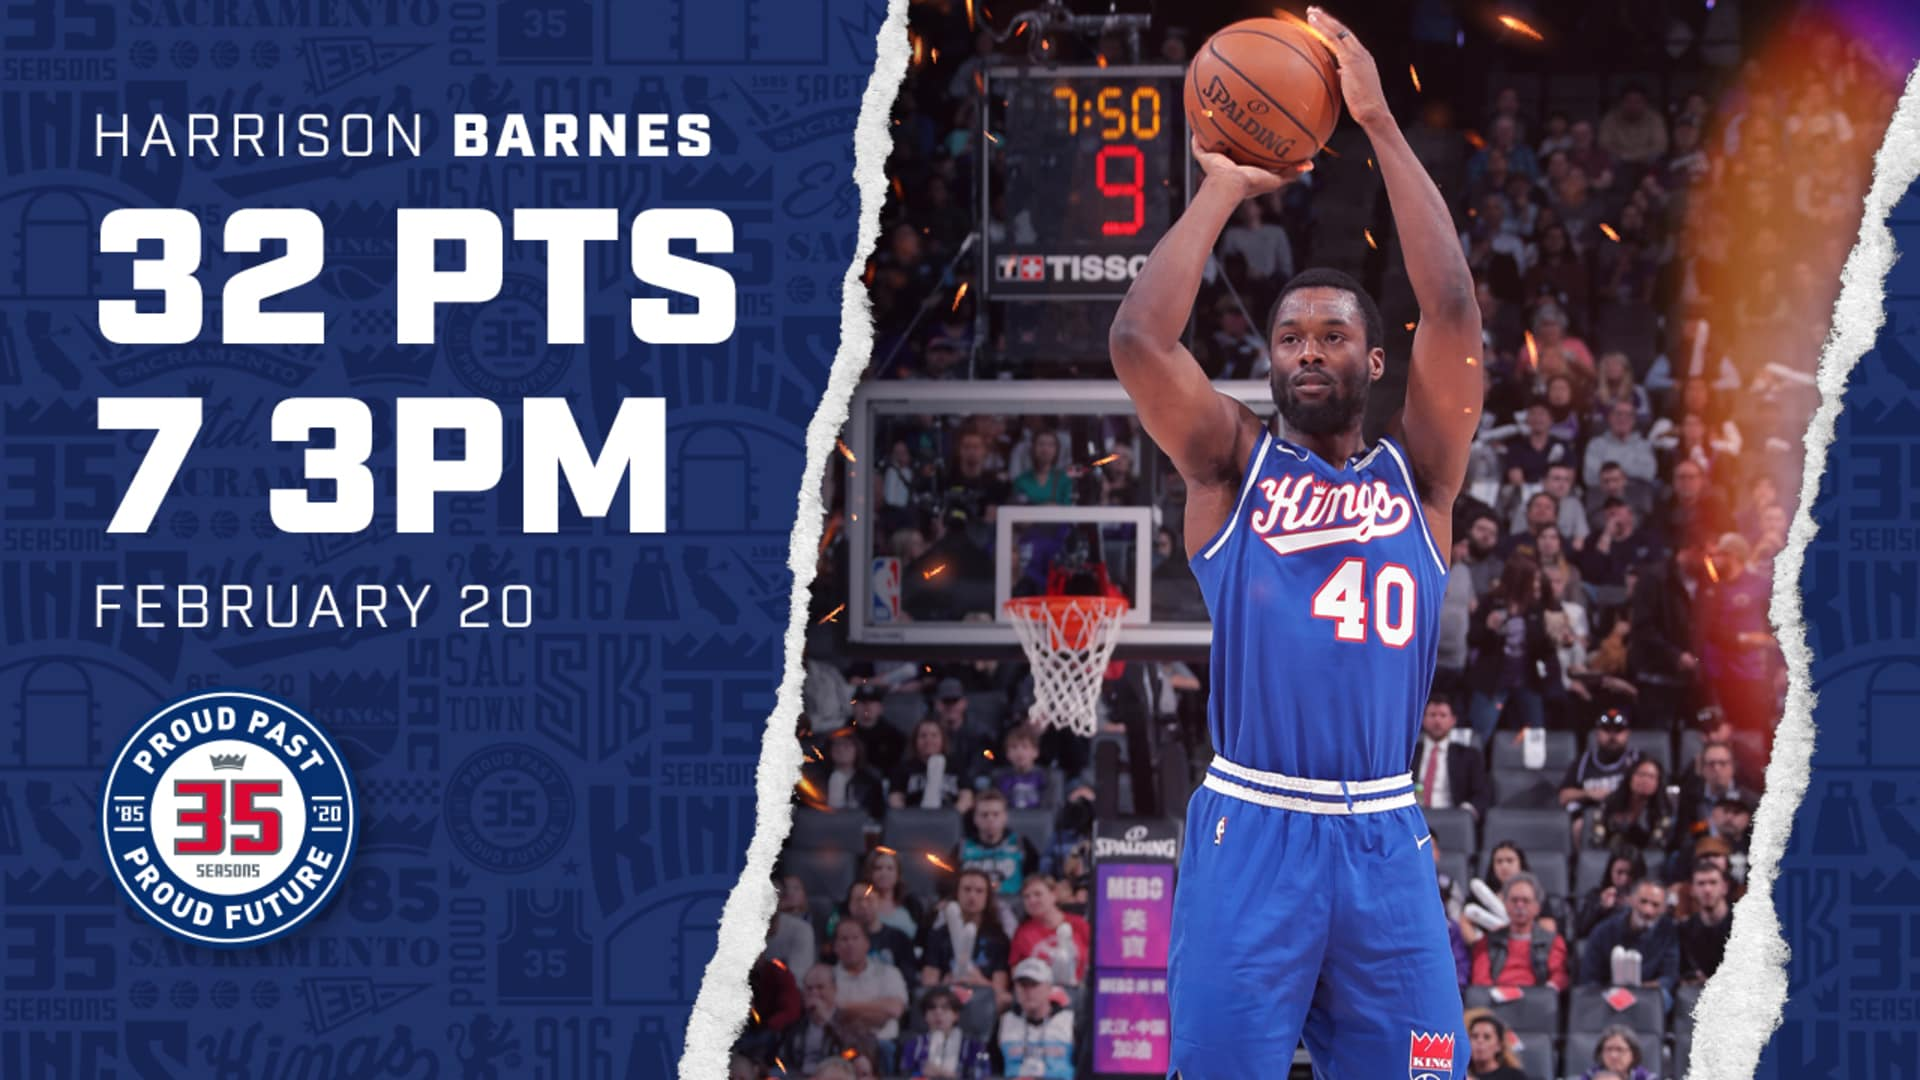 Harrison Barnes Leads Squad with 32 PTS! | Kings vs Grizzlies